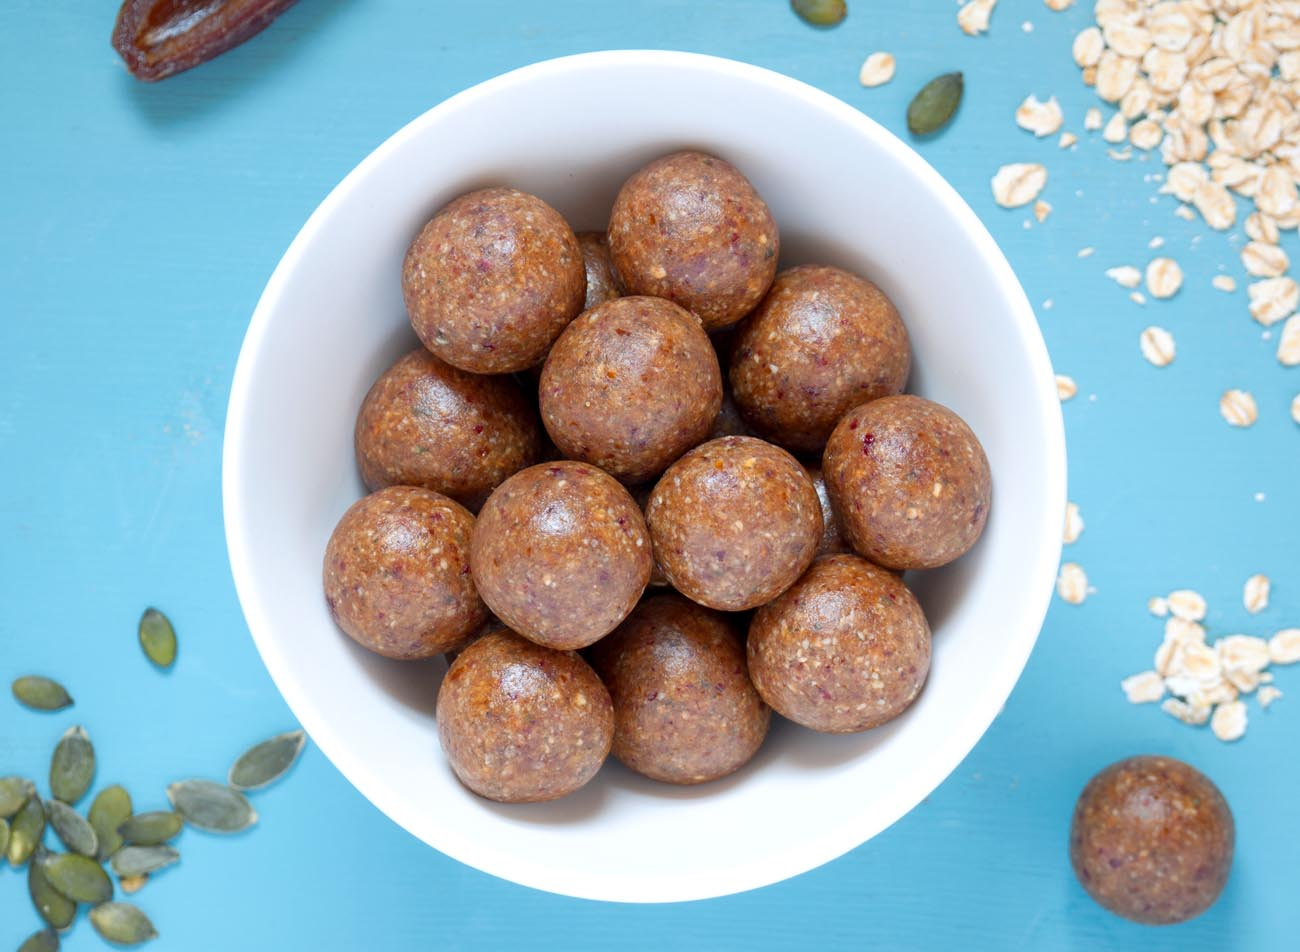 Oat & Date Power Bites - thelastfoodblog.com